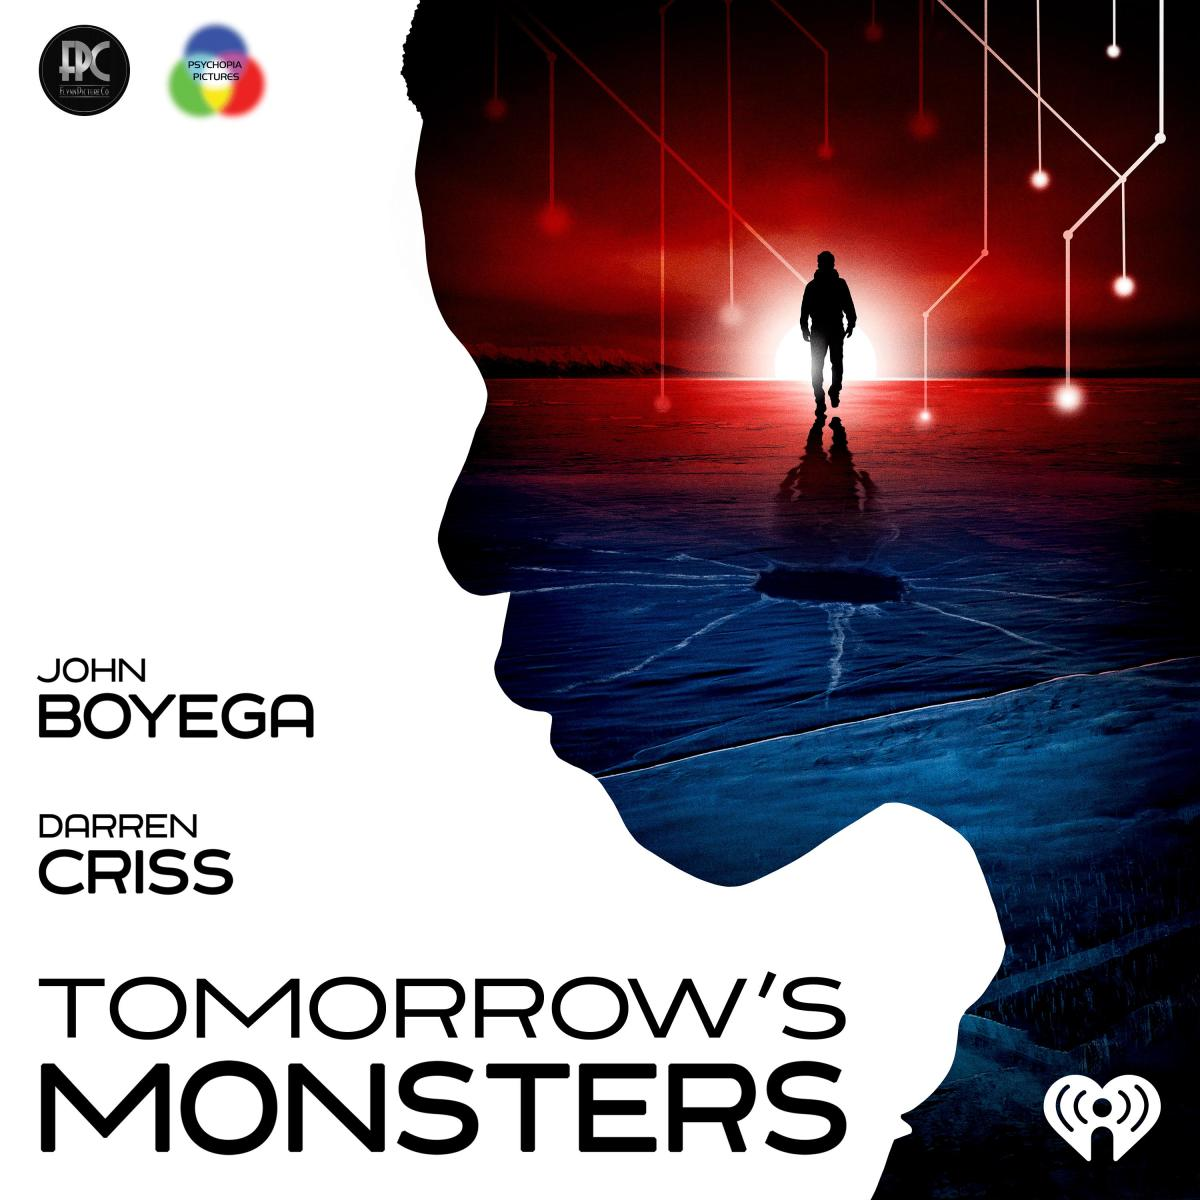 tomorrows-monsters-an-amazing-tale-of-cooperate-espionage-and-science-fiction